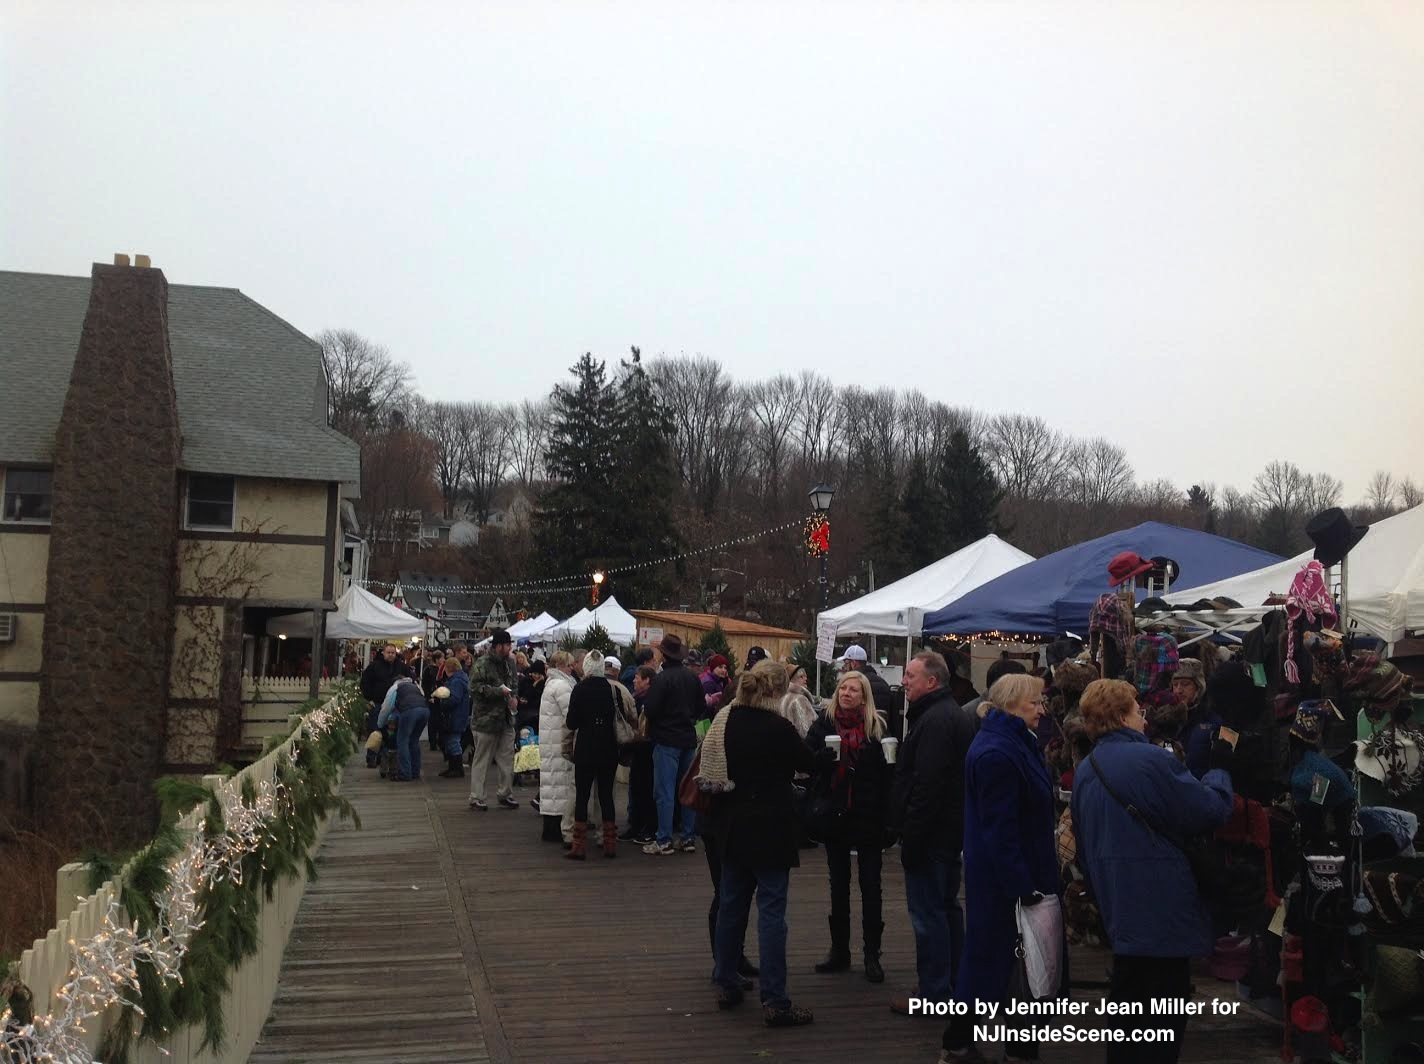 Attendees mingle on the Boardwalk during the Christmas Market, as snow begins to fall.